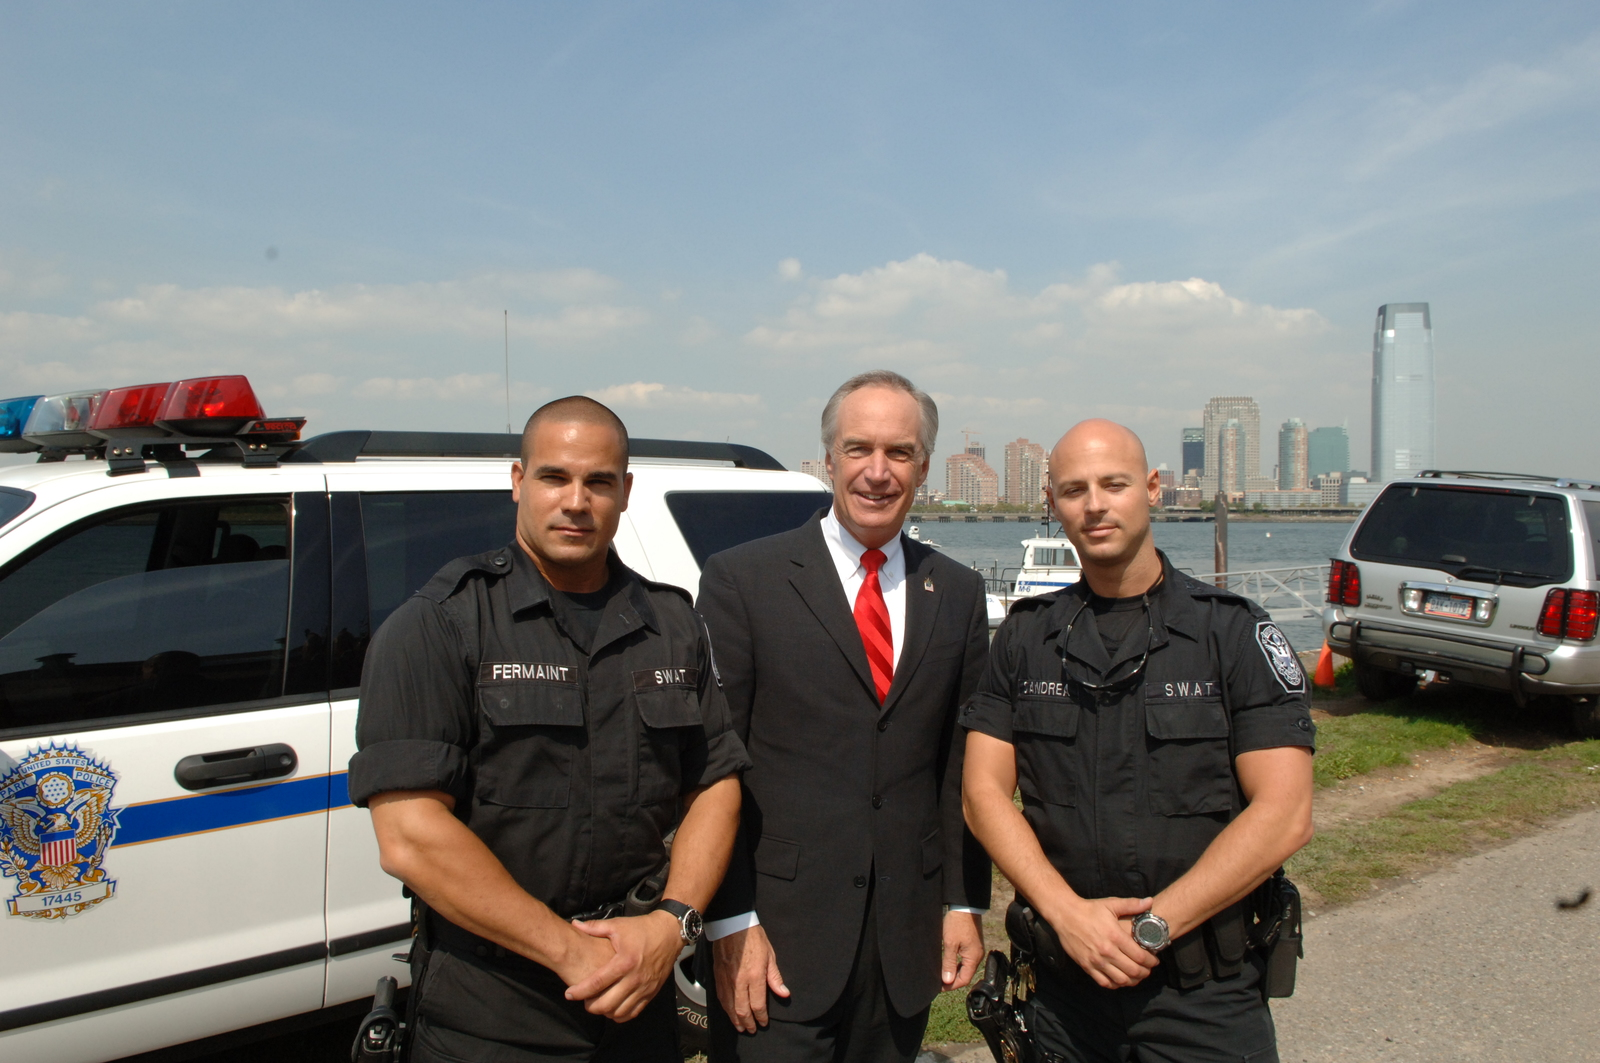 [Assignment: 48-DPA-SOI_K_Ellis_9-18-06] Visit of Secretary Dirk Kempthorne to Ellis Island, New York City, New York, [where he addressed newly naturalized U.S. citizens during] Citizenship Day ceremonies, [met with National Park Service (NPS) and U.S. Park Police personnel, and joined U.S. Citizenship and Immigration Services (USCIS) Director Emilio Gonzalez for announcement of joint USCIS-NPS program to welcome new citizens at National Park sites] [48-DPA-SOI_K_Ellis_9-18-06_IOD_5928.JPG]